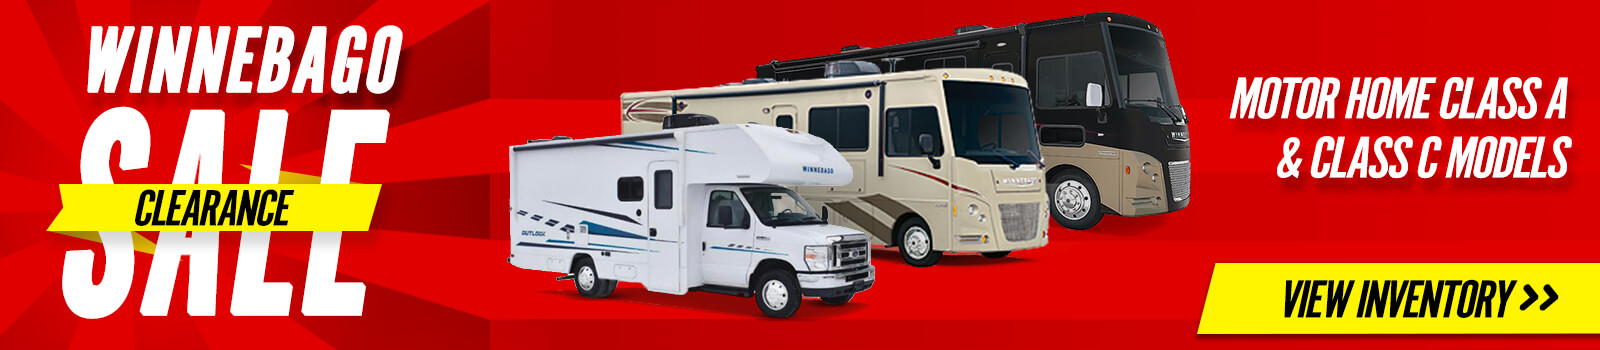 Winnebago Clearance Sale